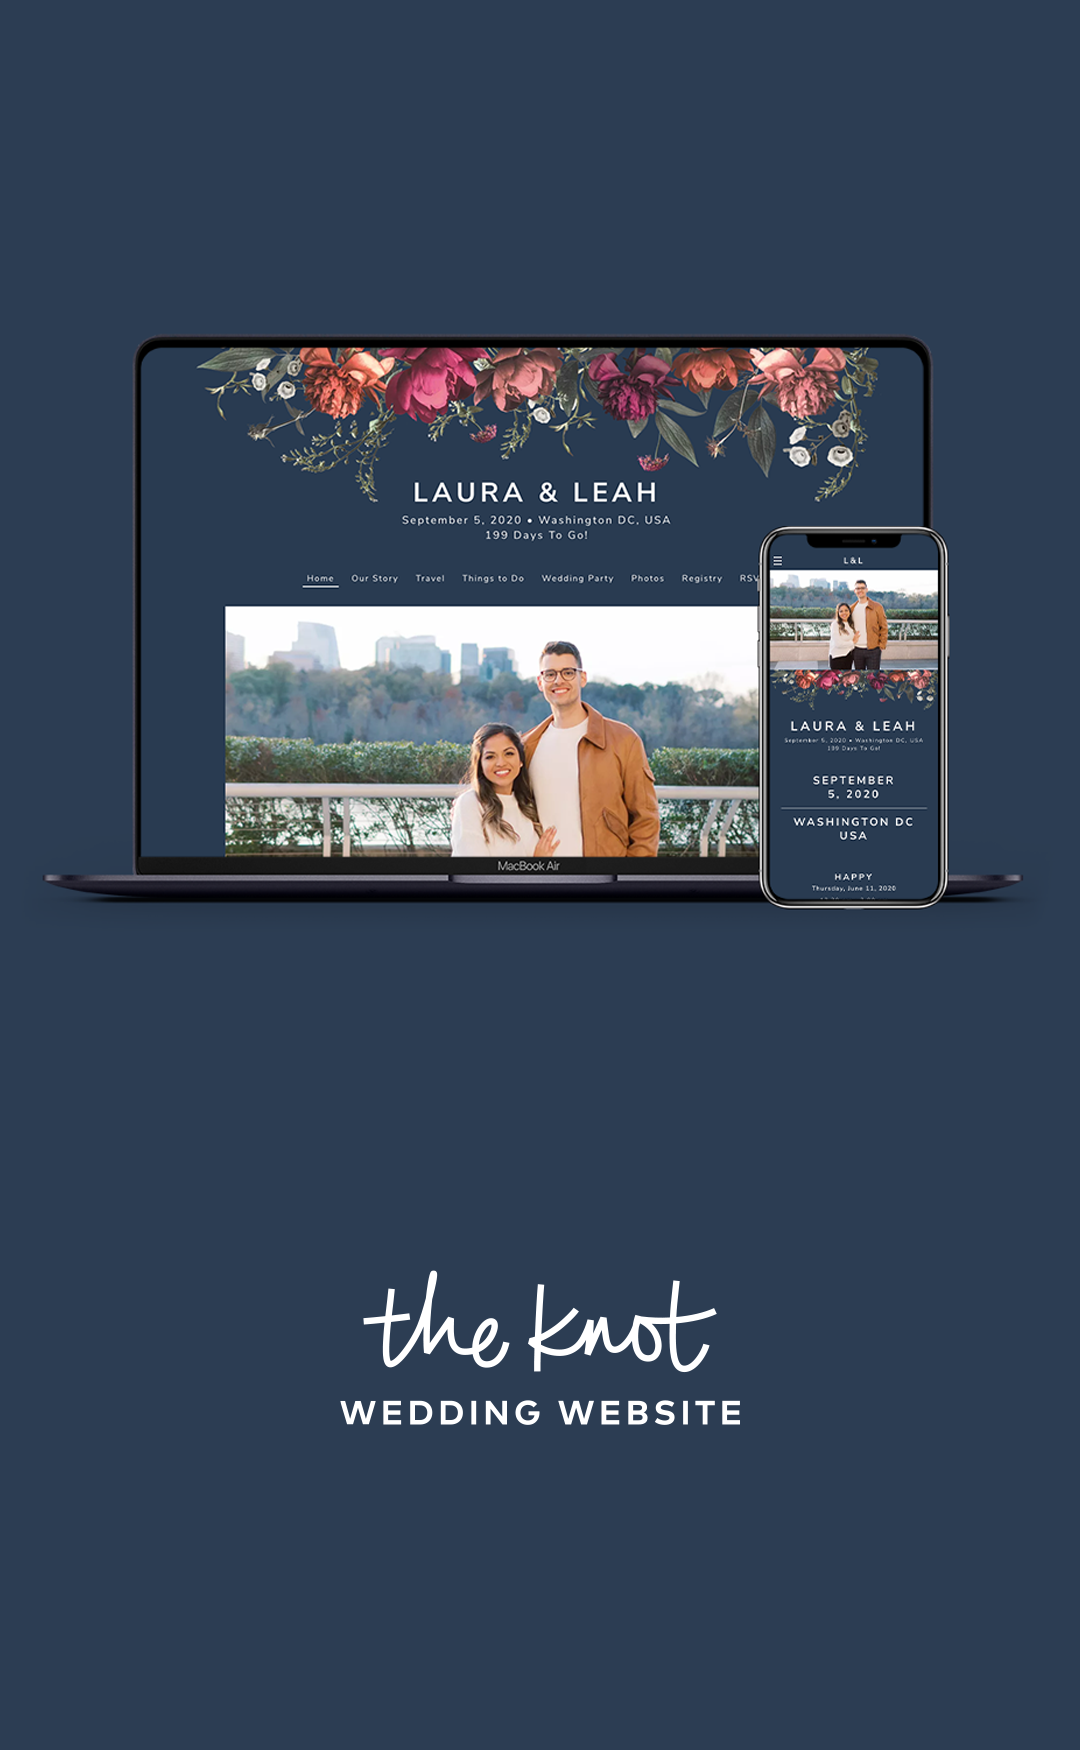 The Knot Wedding Websites Free Easy To Use Create A Wedding Website Your Guests Will Love In 2020 Wedding Website Wedding Website Free The Knot Wedding Website